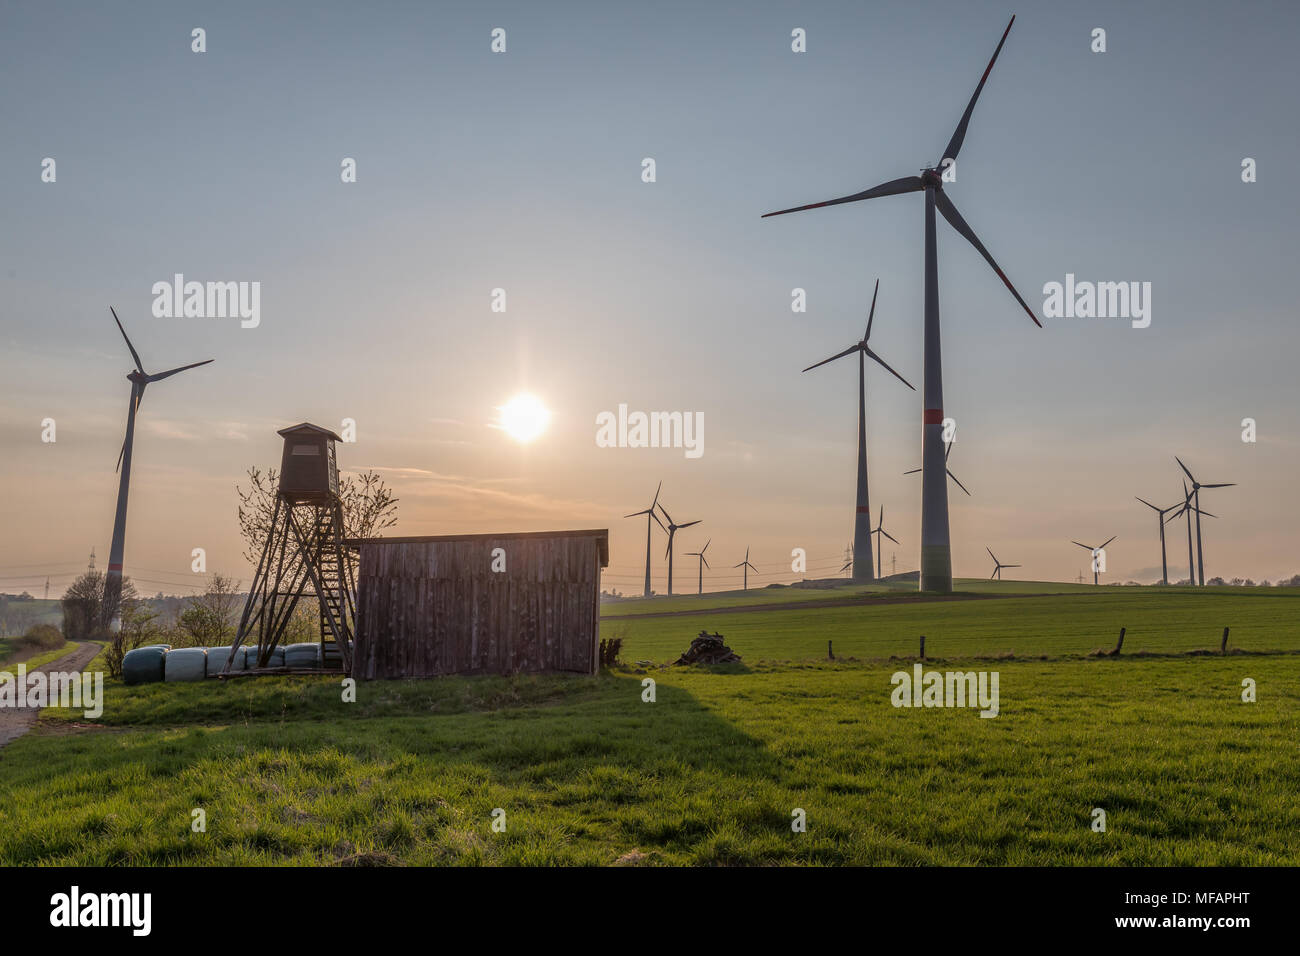 cabin and wind farm - Stock Image